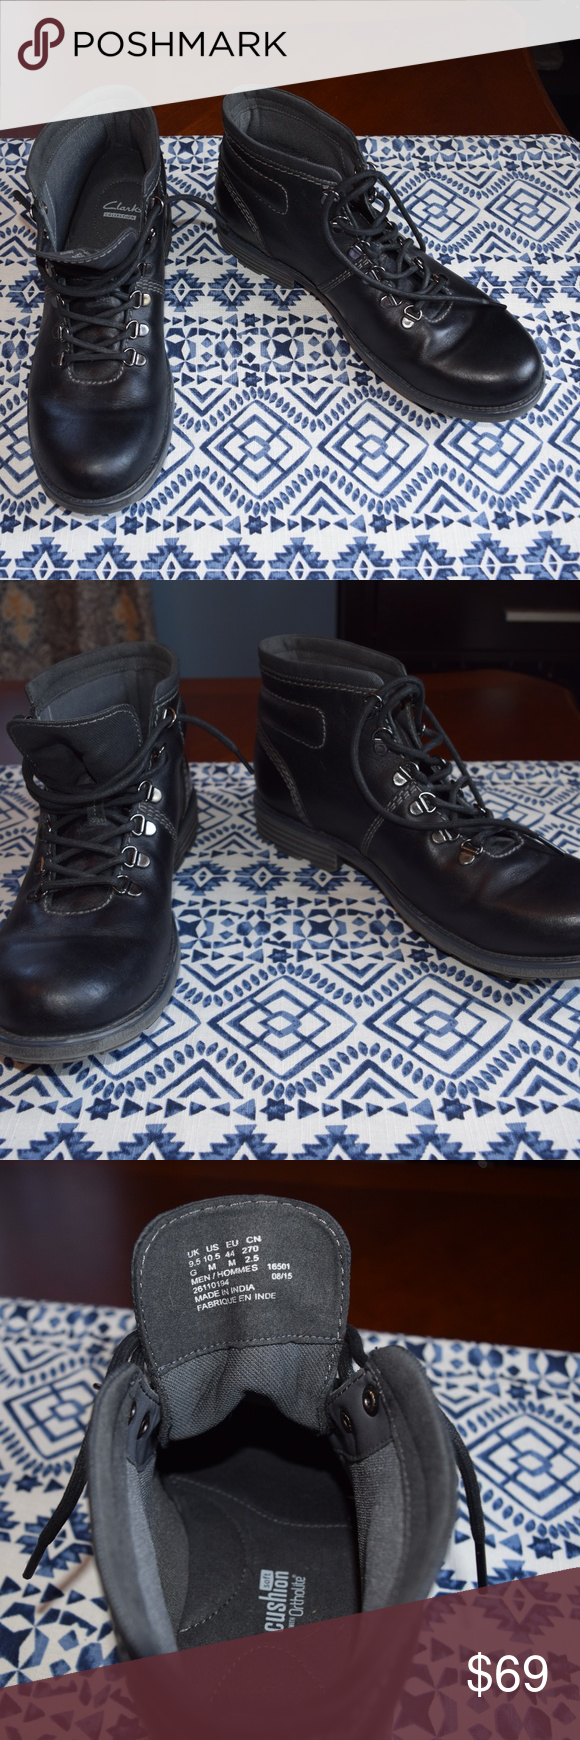 coupon code no sale tax attractive & durable NWOT Clarks collection hiking boots Beautiful black boots ...